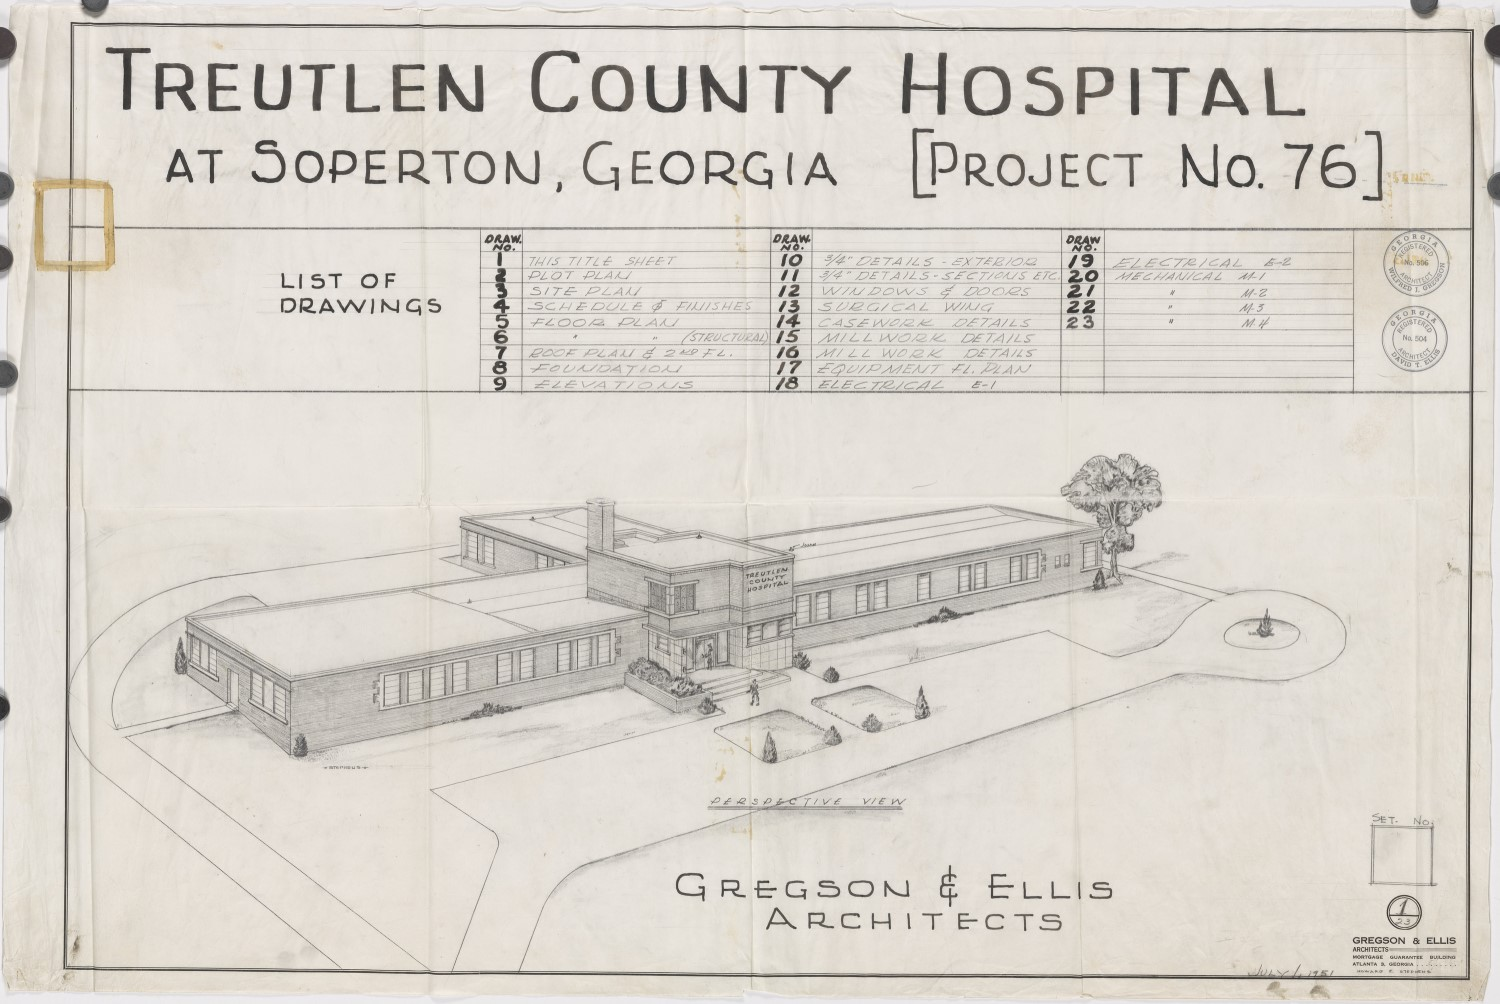 Perspective drawing of Treutlen County Hospital